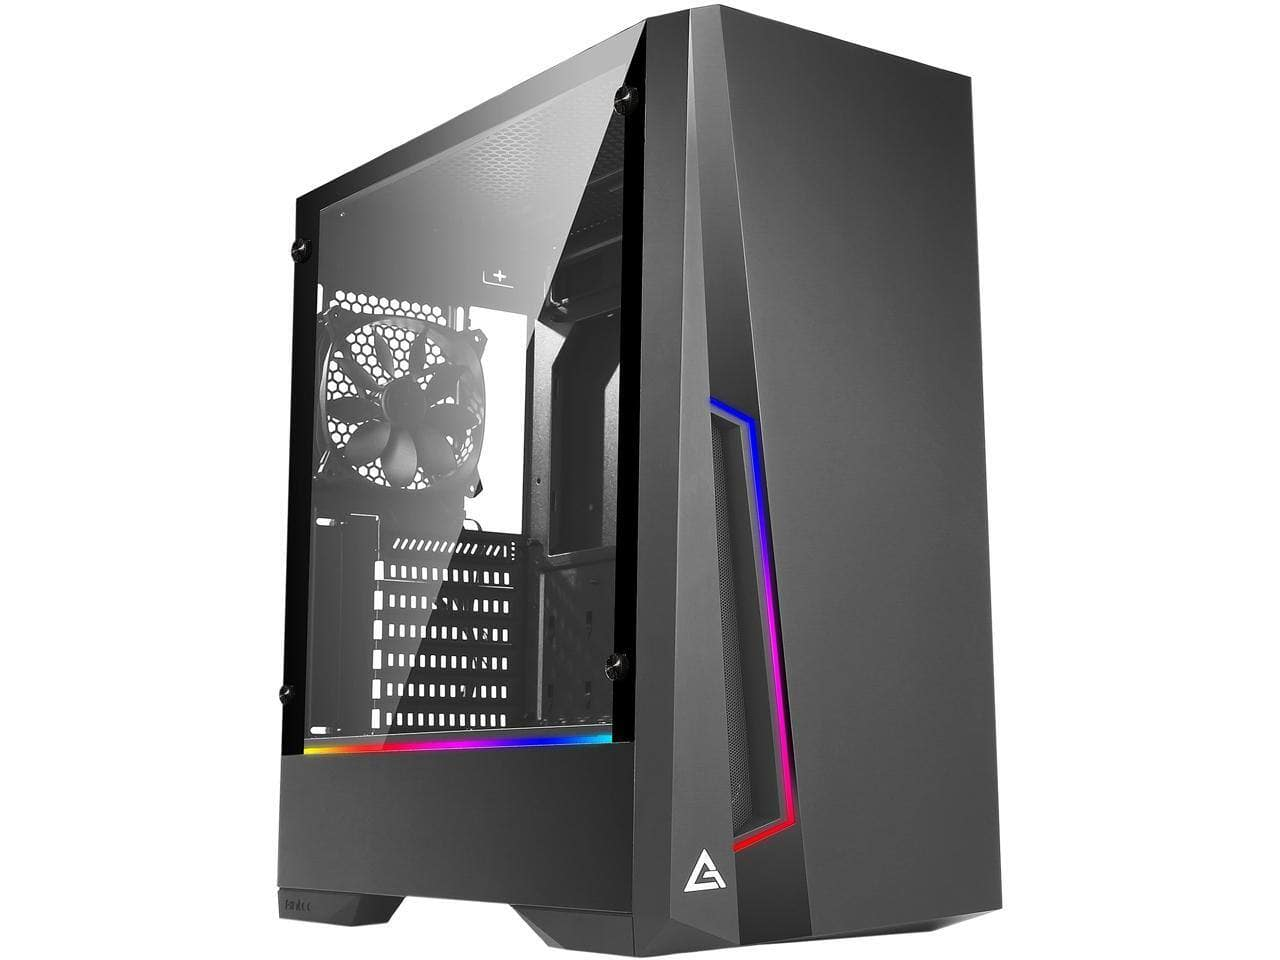 Antec Dark Phantom ATX Mid Tower Gaming Case (w/ ARGB Motherboard Sync) for $49.99 after Mail-in Rebate + FS